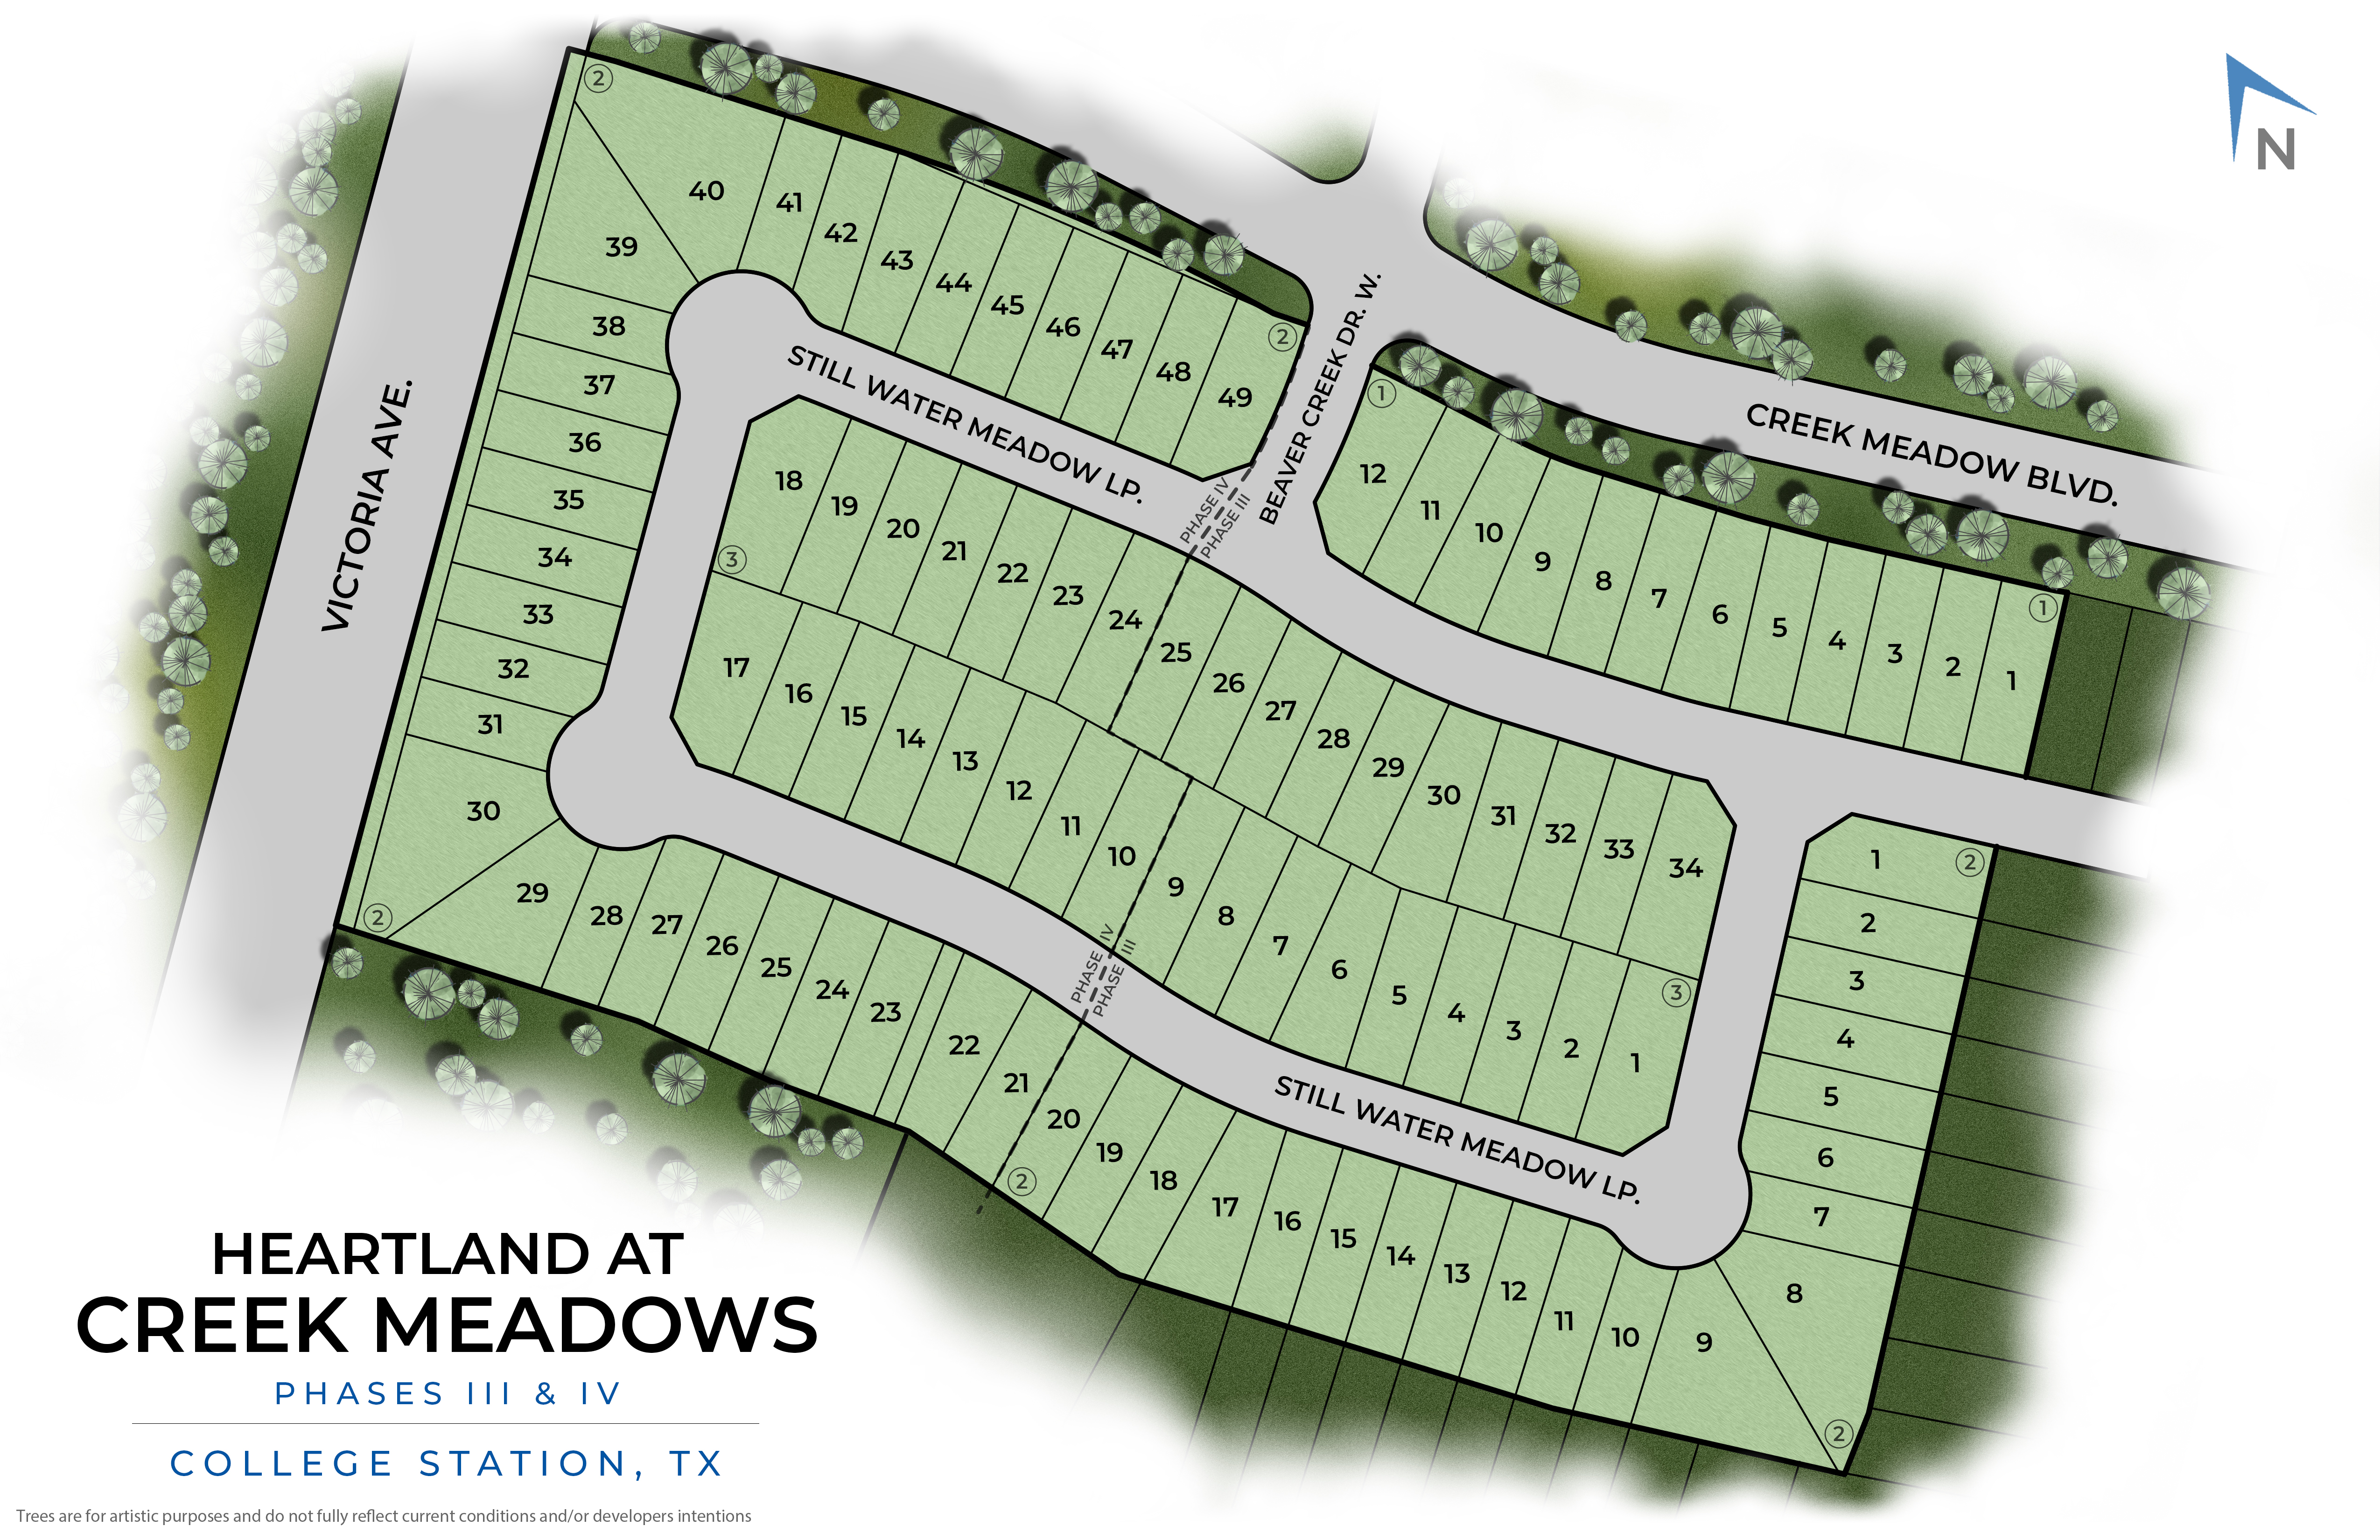 College Station, TX Heartland at Creek Meadows New Homes from Stylecraft Builders